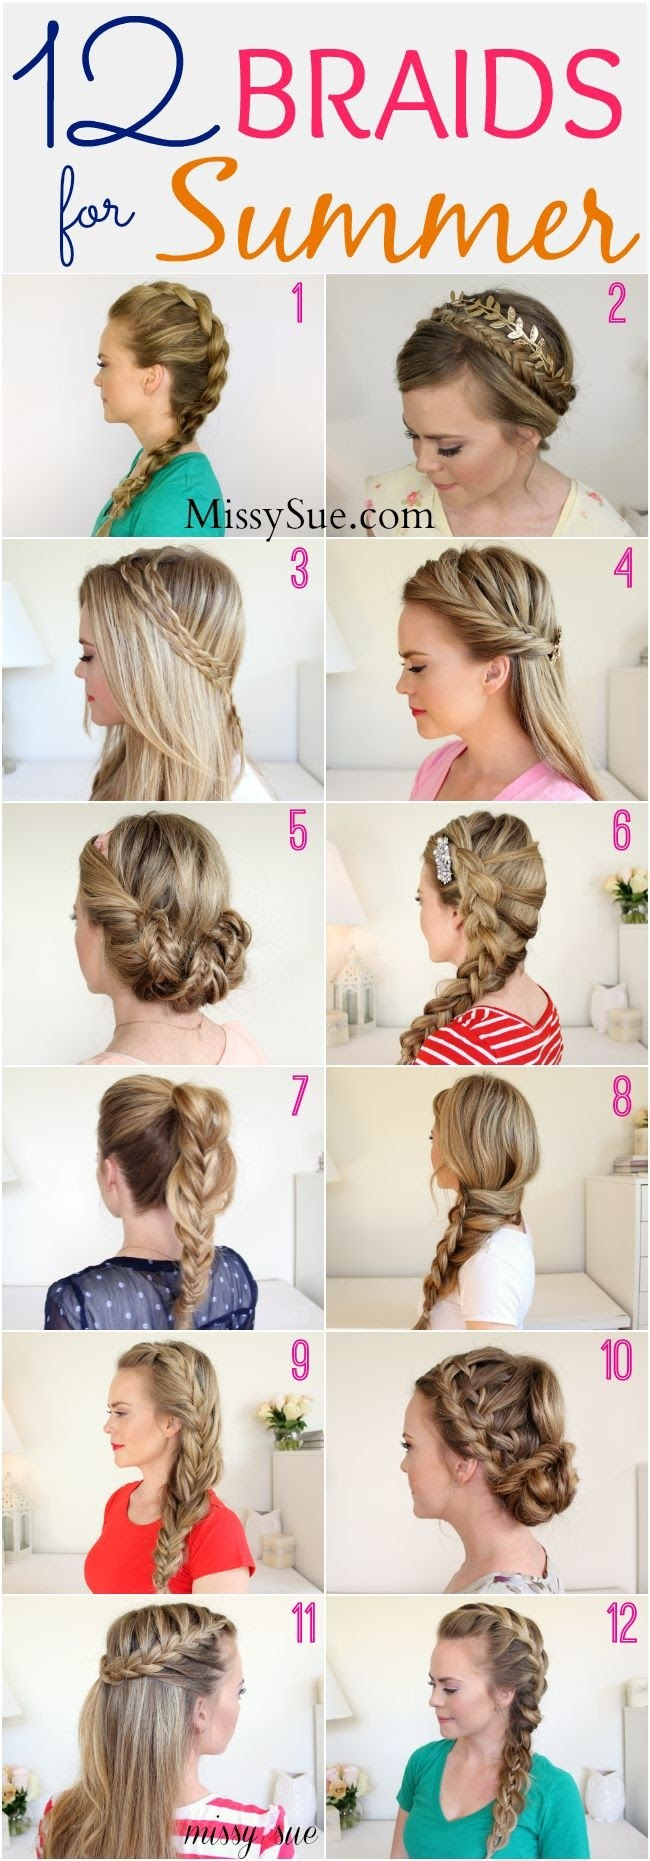 25 Chic Braided Hairstyles for Girls - Pretty Designs